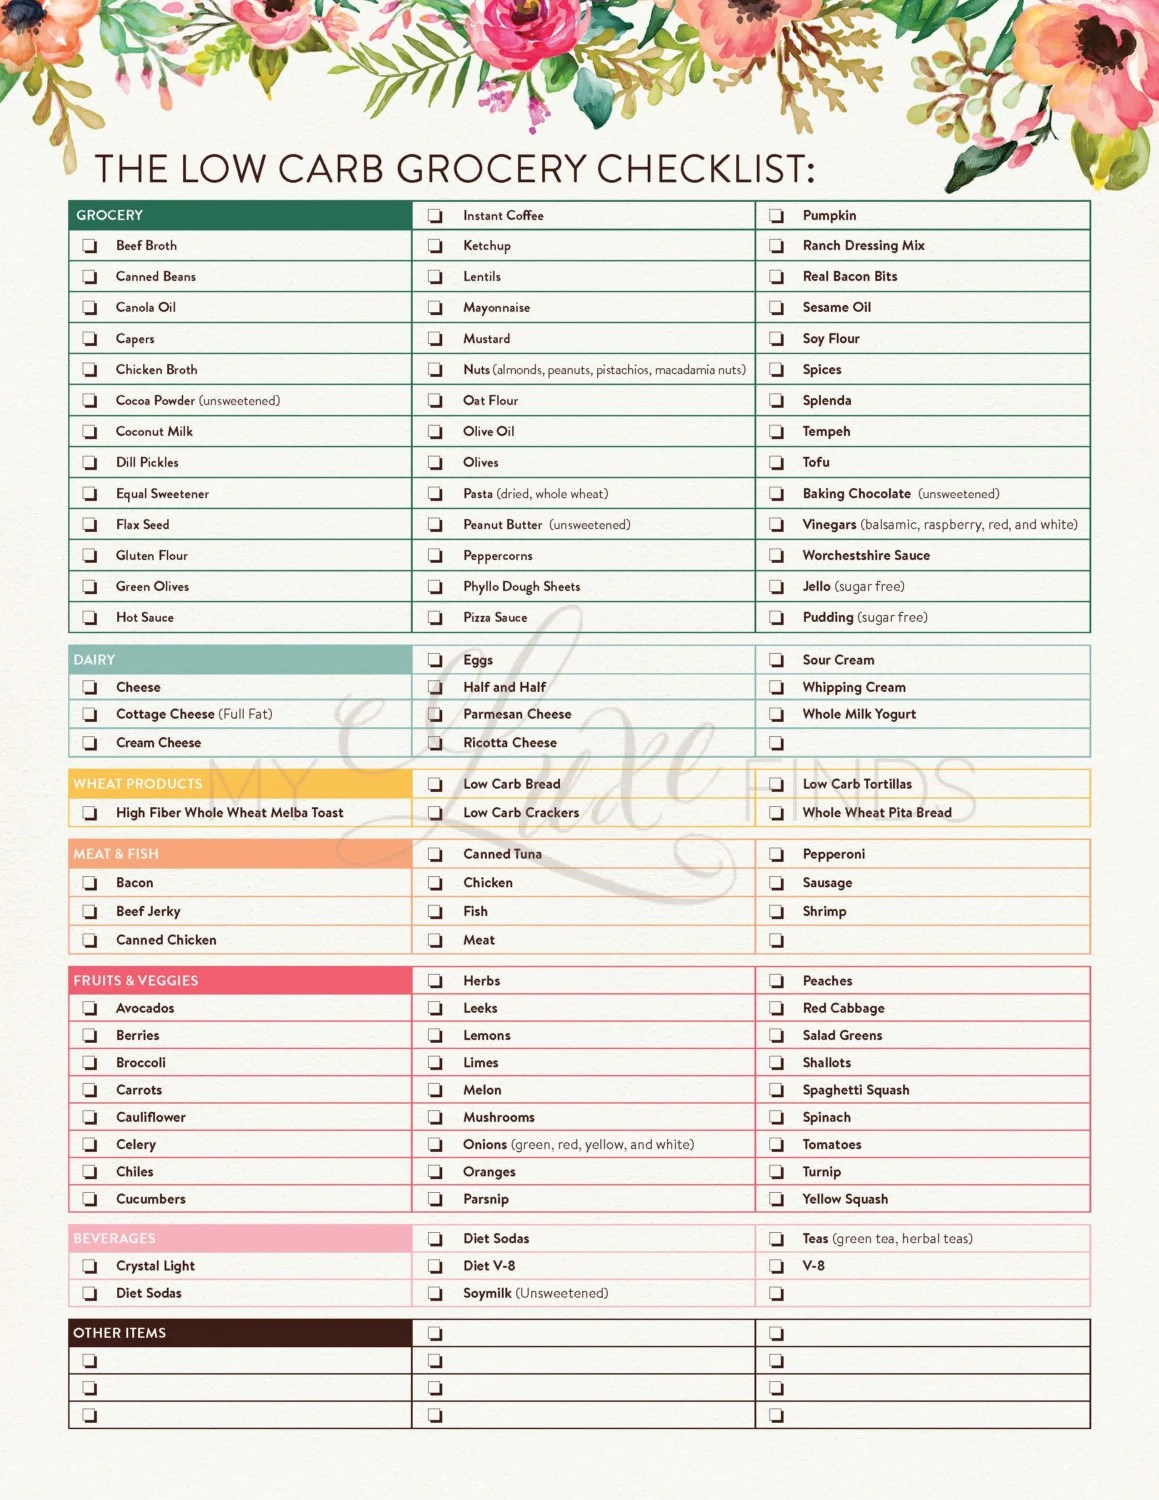 Low Carbt Grocery Shopping Checklist Printable